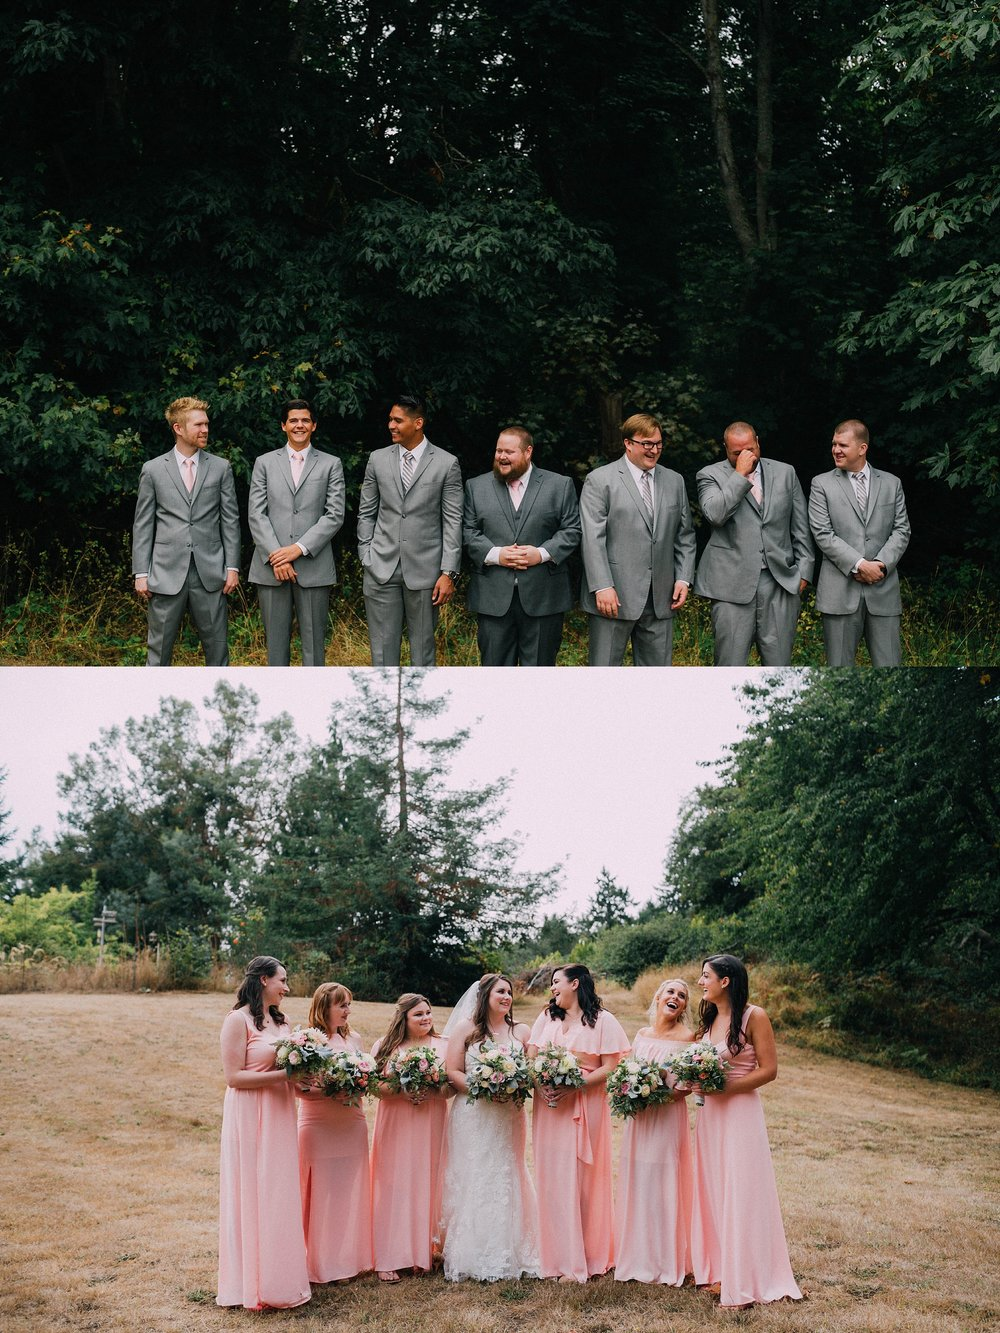 karisa ryan - vashon island backyard wedding photographer - seattle area backyard wedding photography - ashley vos-12.jpg